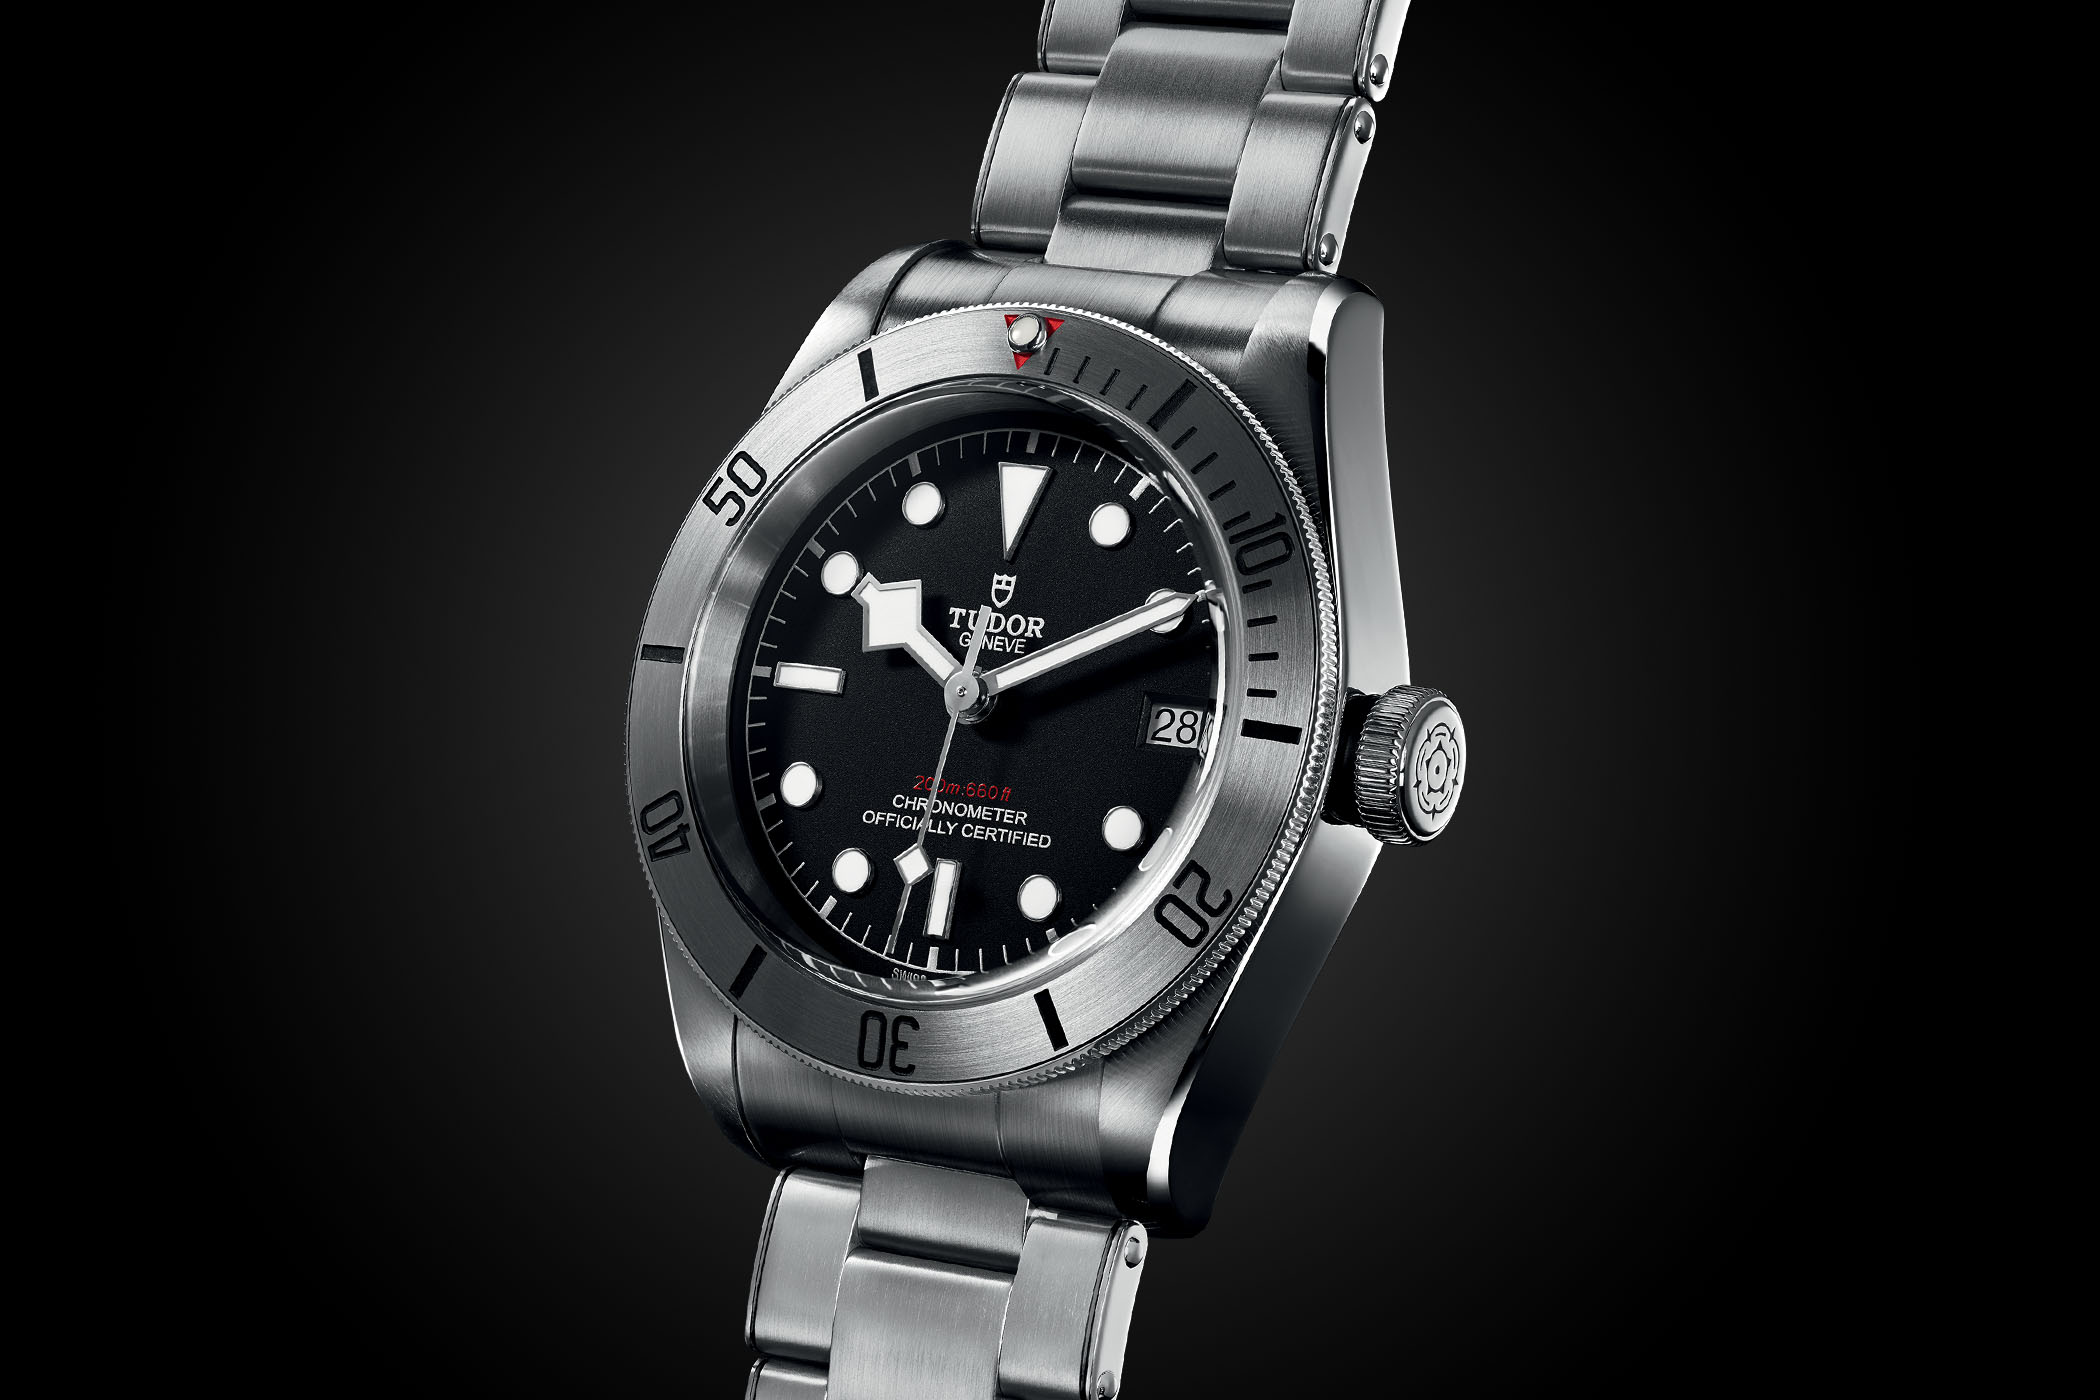 Tudor Heritage Black Bay Steel 79730 Date - Tudor Black Bay Date - Baselworld 2017